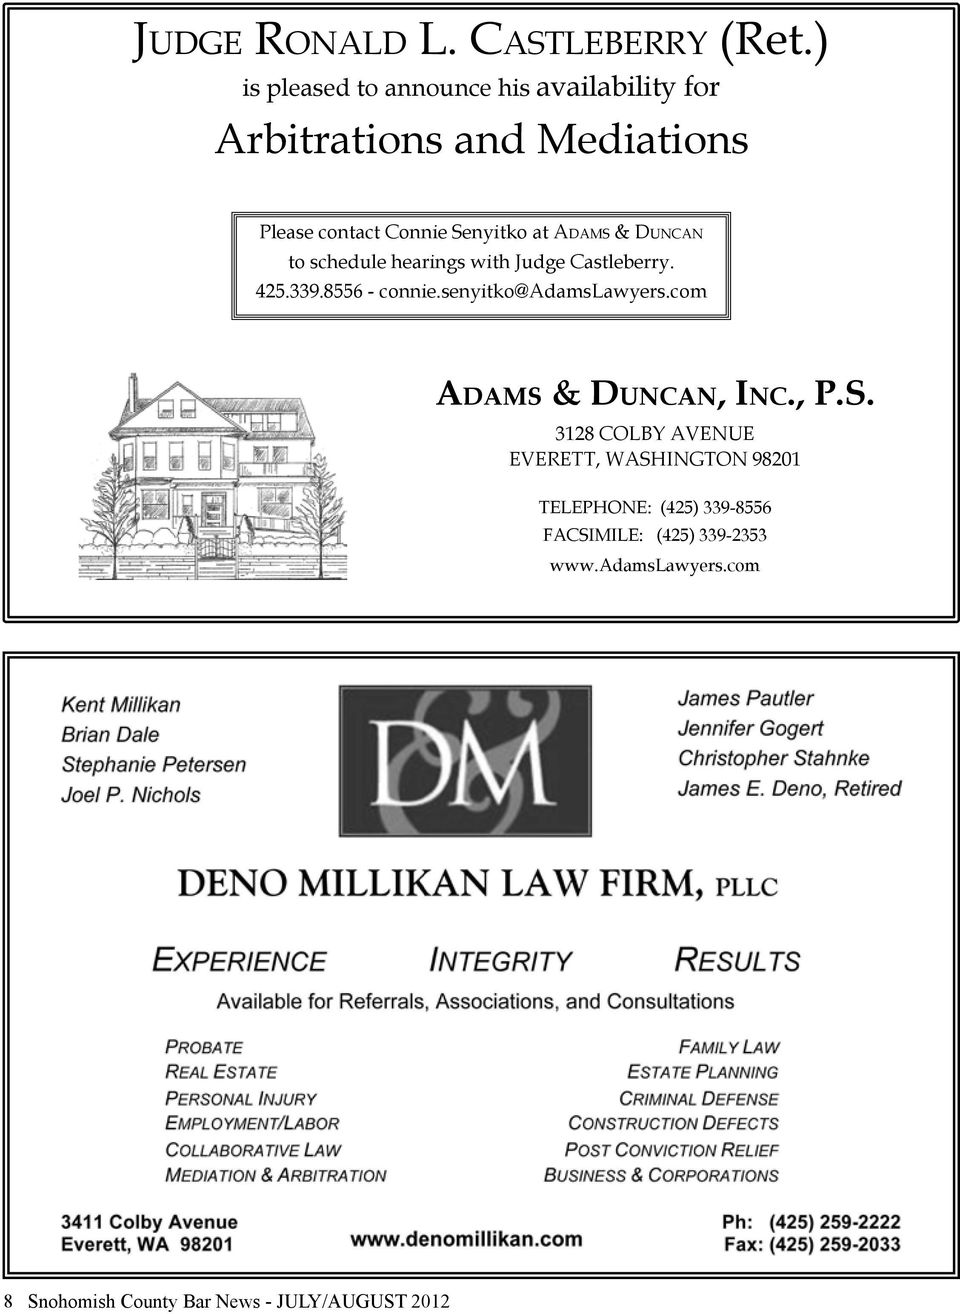 Adams & Duncan to schedule hearings with Judge Castleberry. 425.339.8556 - connie.senyitko@adamslawyers.